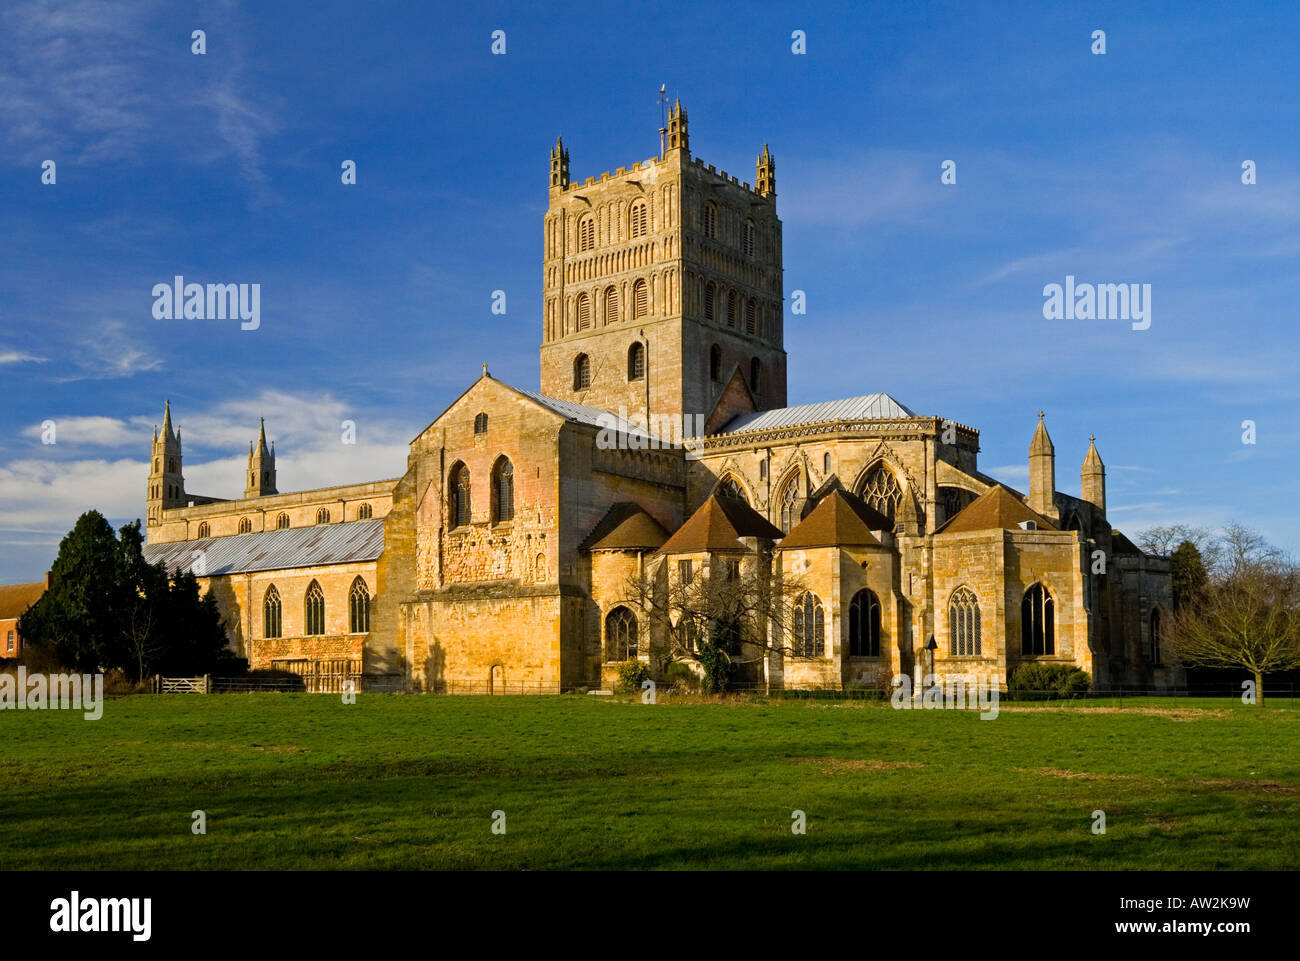 Tewkesbury Abbey St Mary the Virgin Church Gloucestershire England UK with tower and blue sky - Stock Image